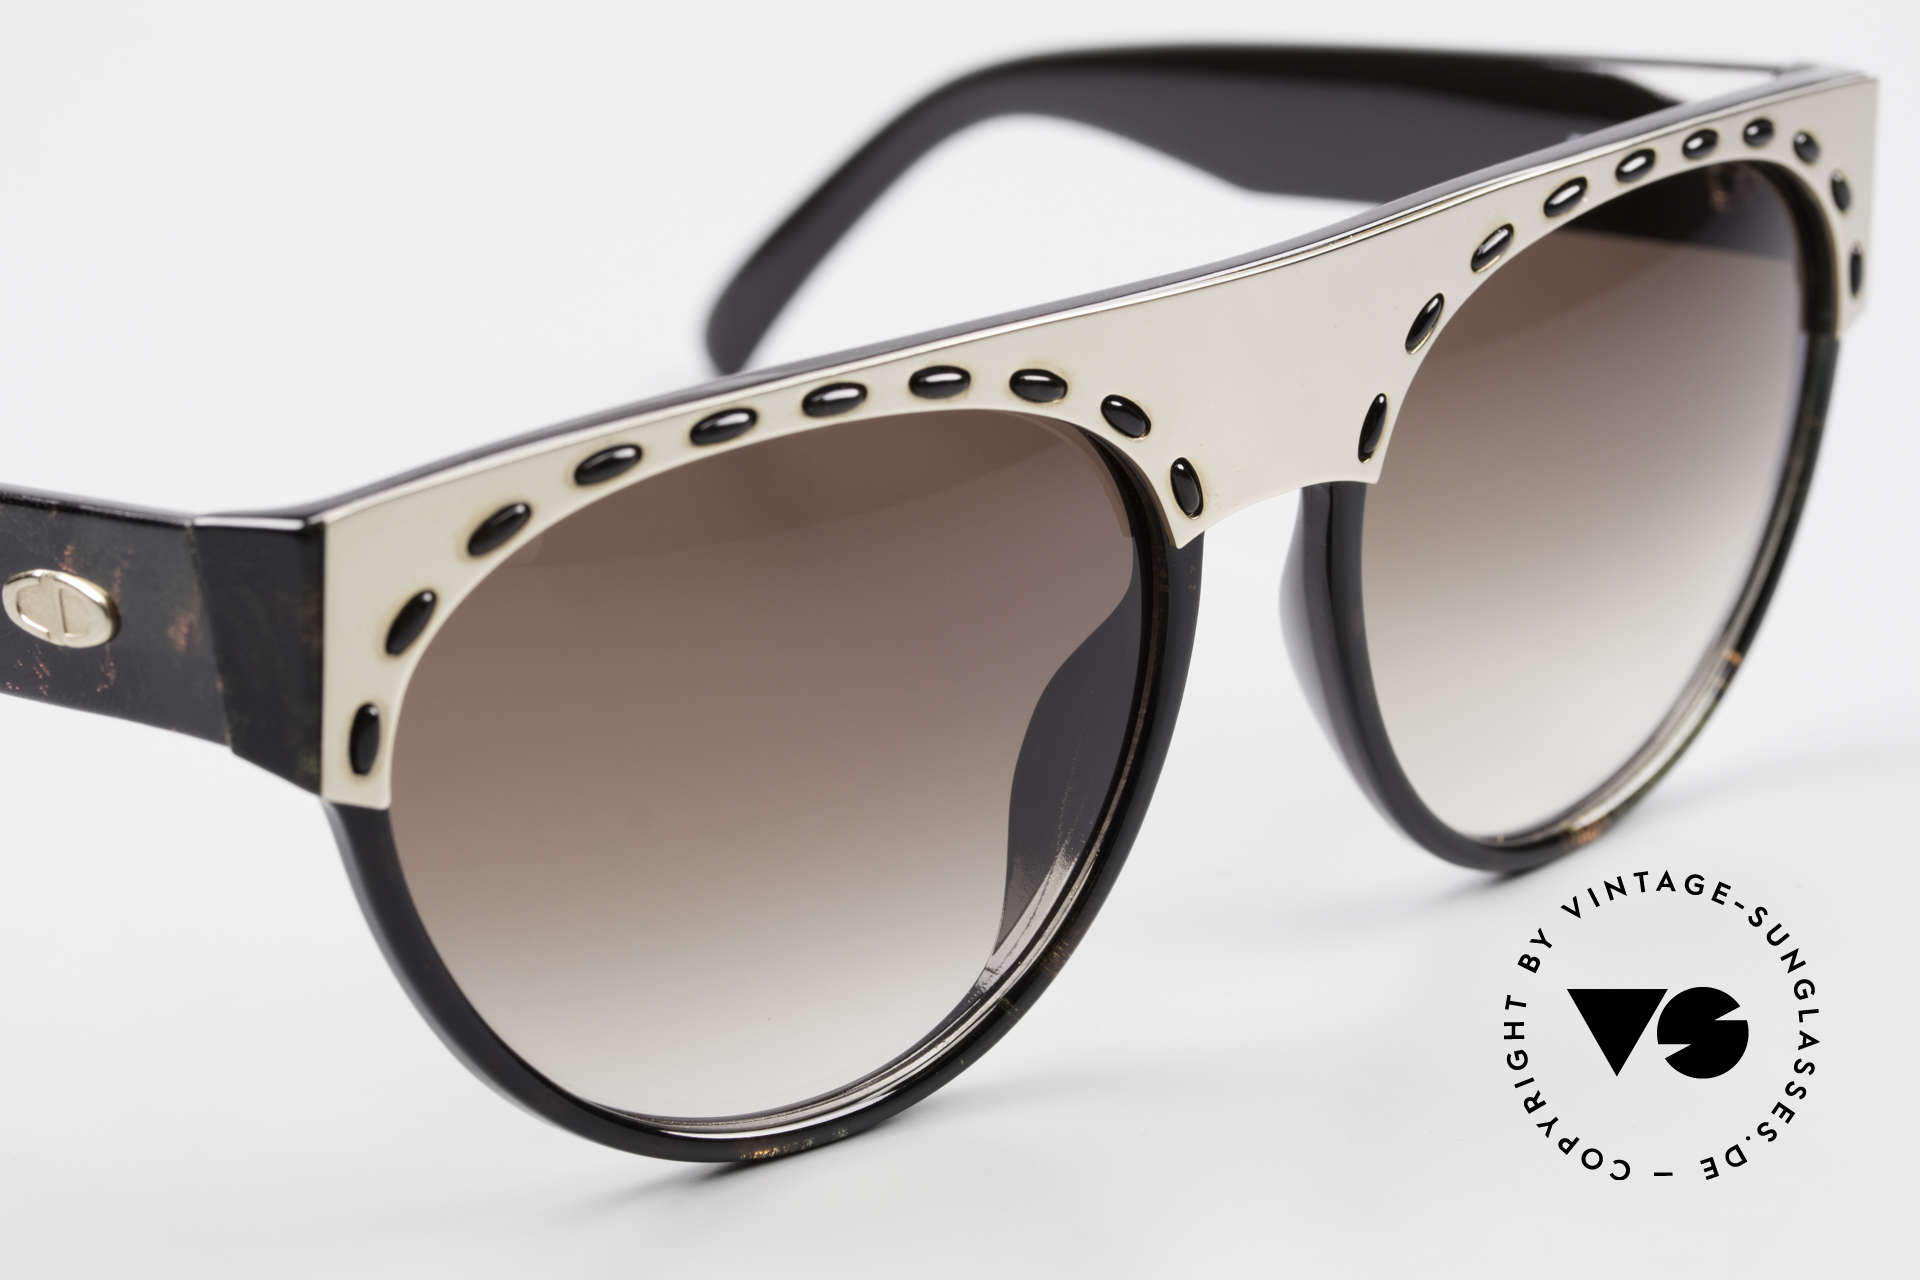 Christian Dior 2437 Ladies Sunglasses 80's Vintage, NO retro fashion; a 30 years old original, one of a kind!, Made for Women